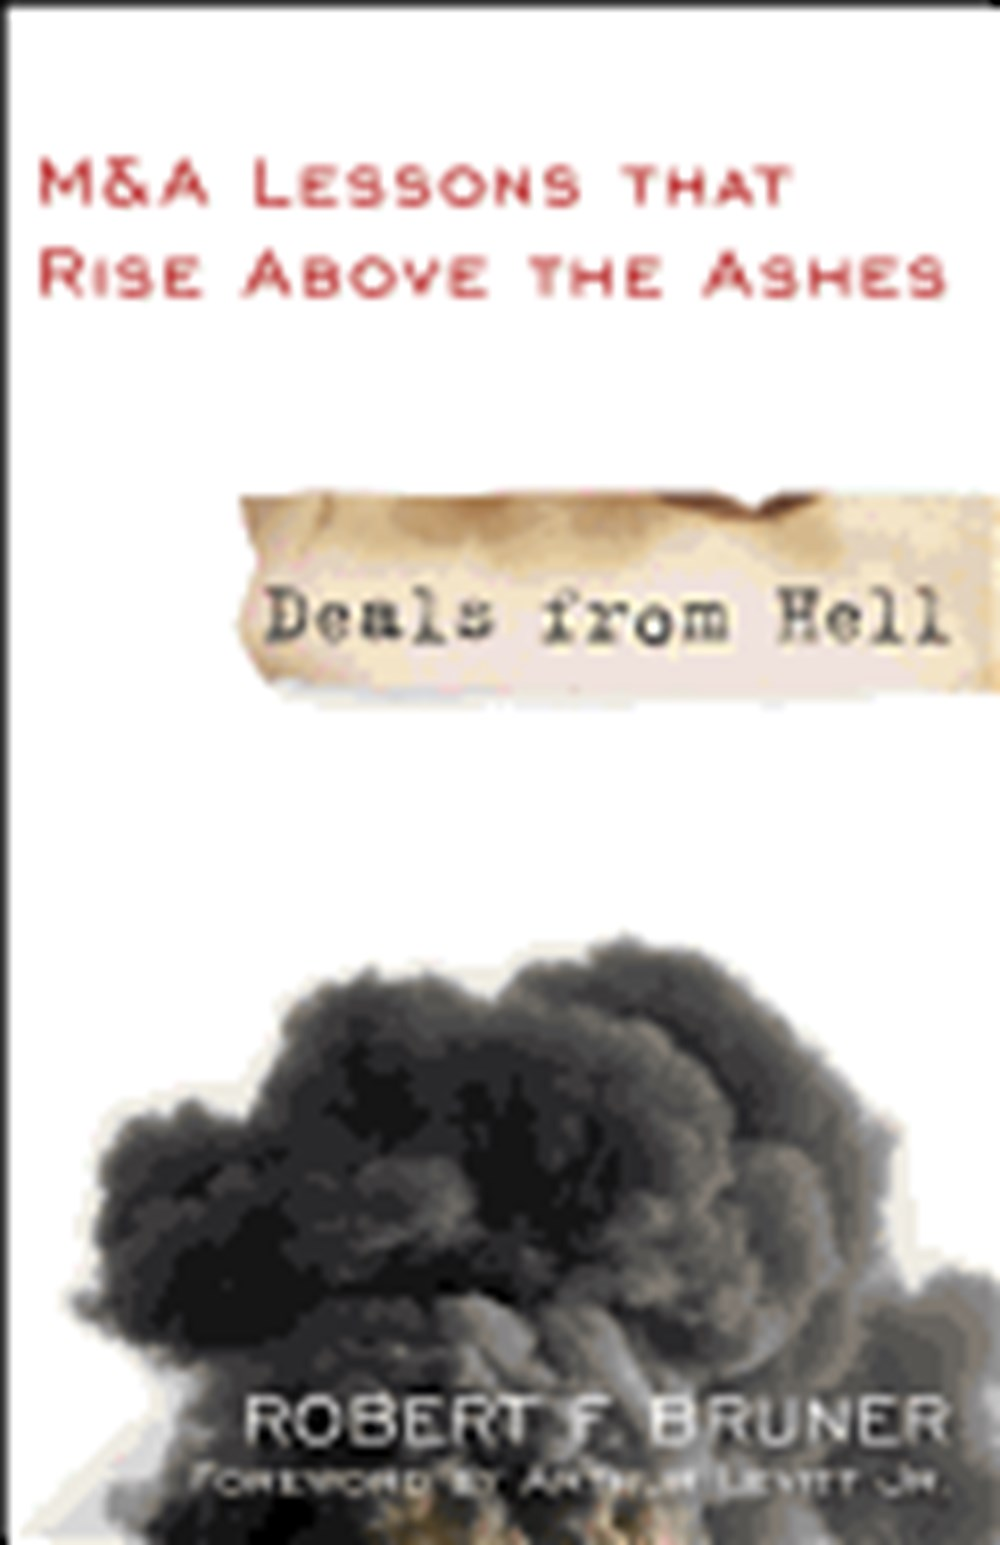 Deals from Hell M&A Lessons That Rise Above the Ashes